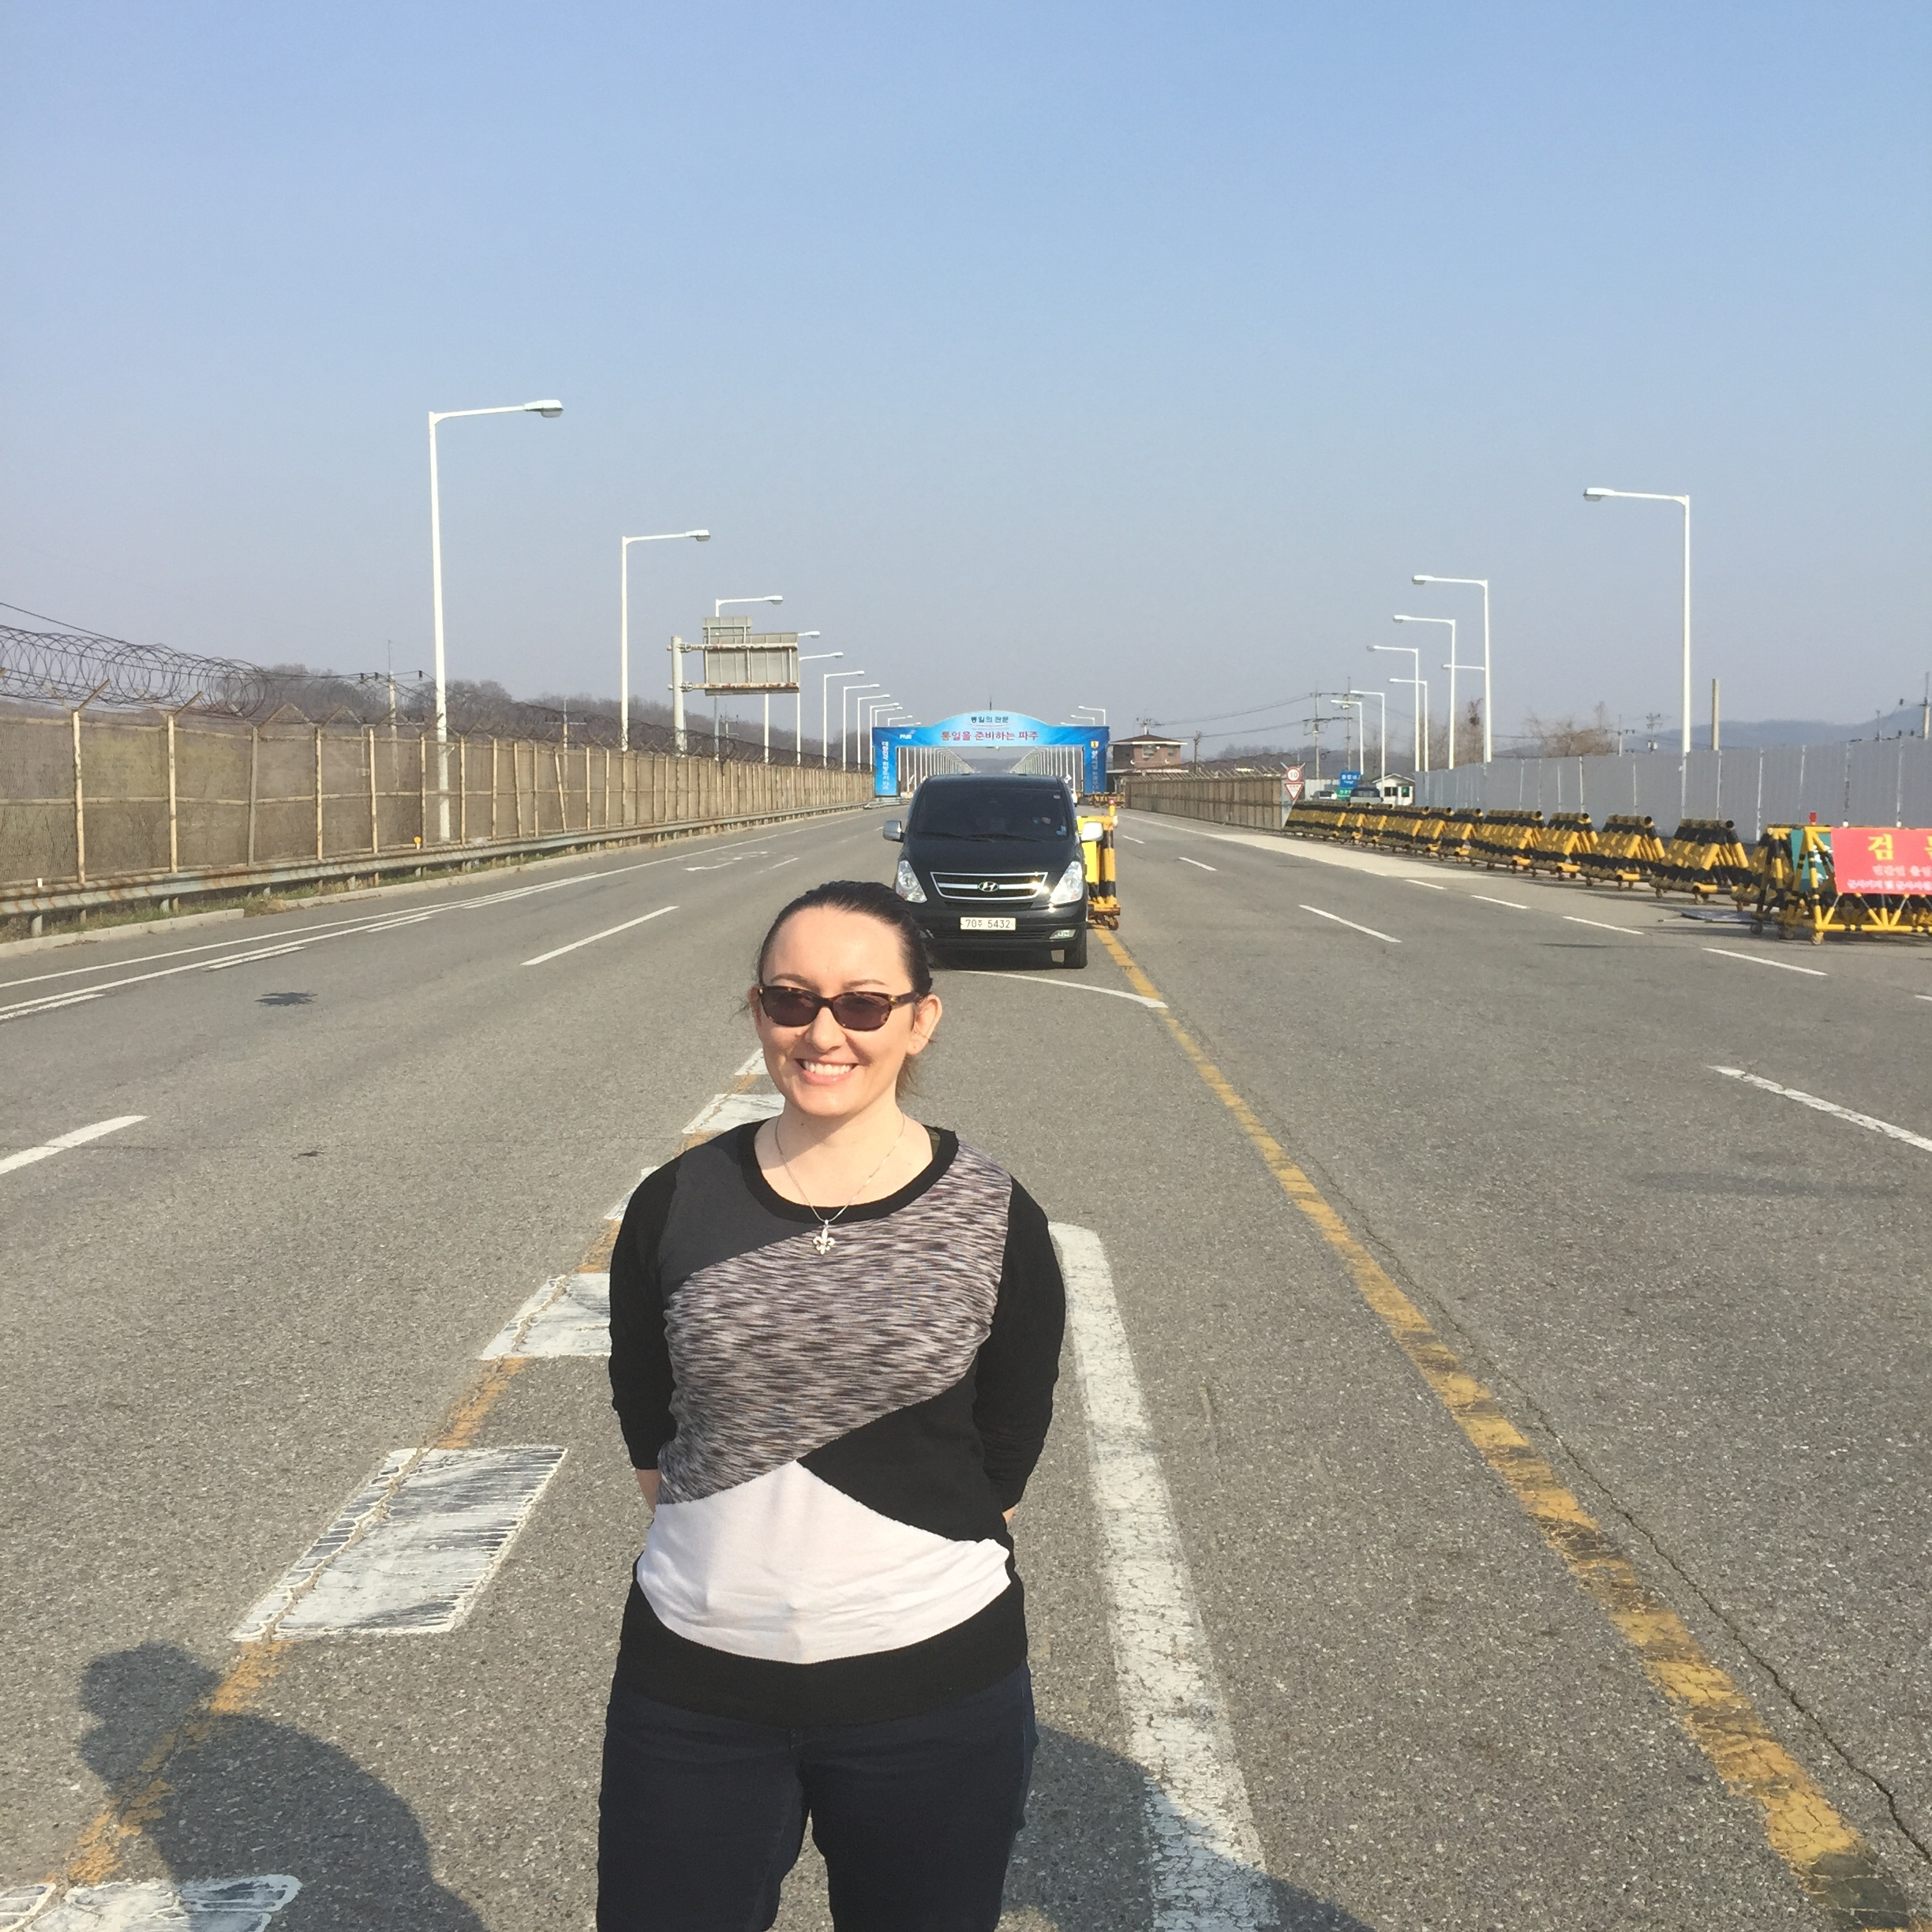 Me standing at the heavily fortified border crossing between North and South Korea (2015).